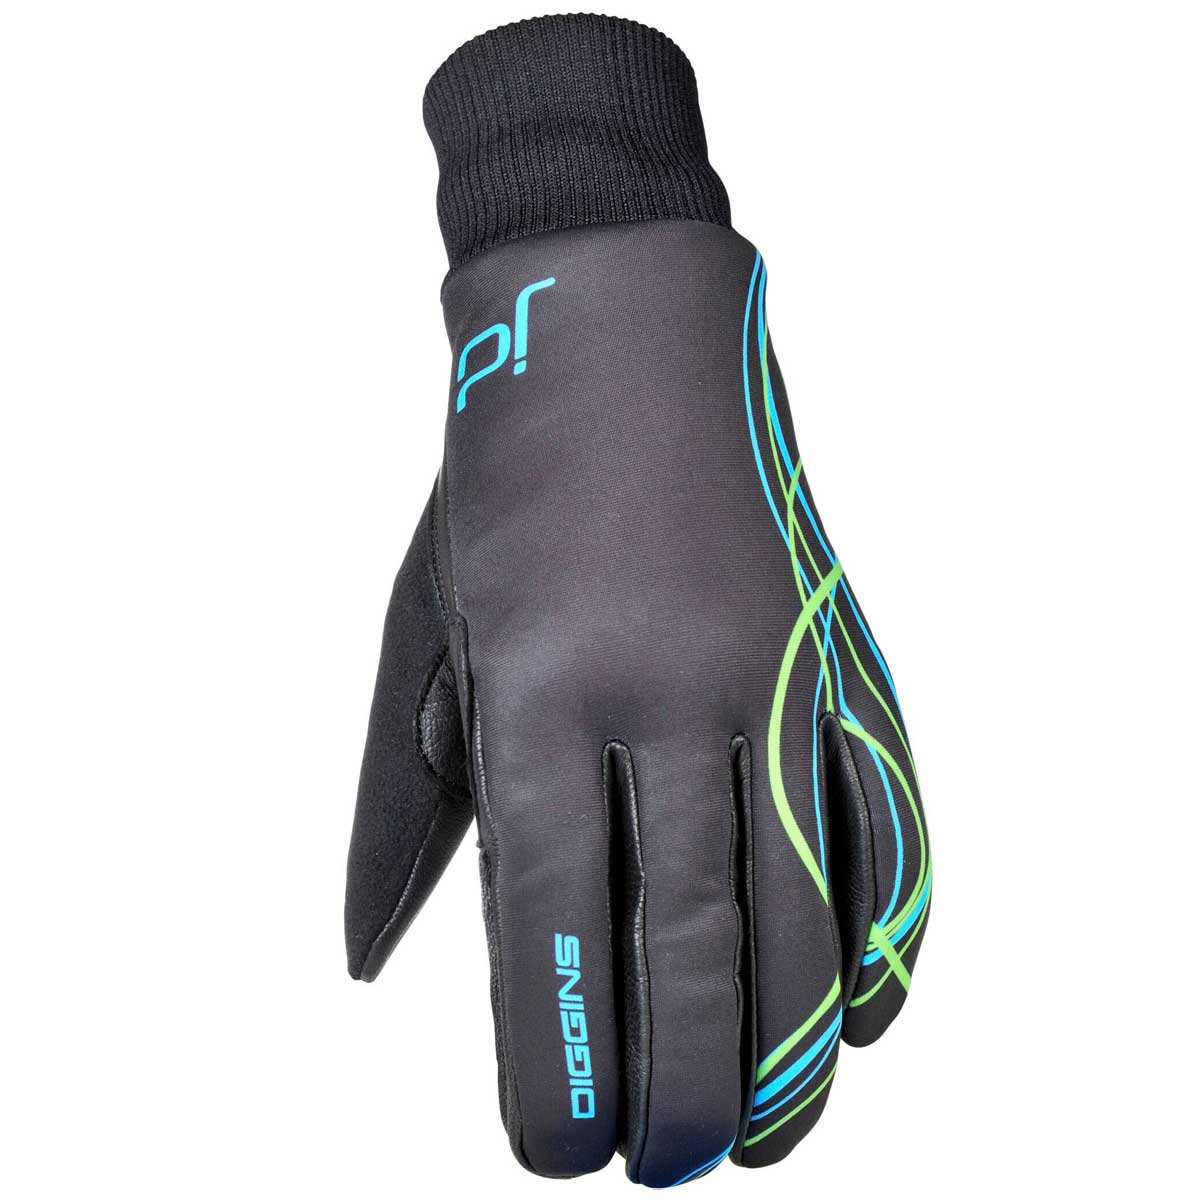 Swix Kids' JD Training Glove in Black Assorted